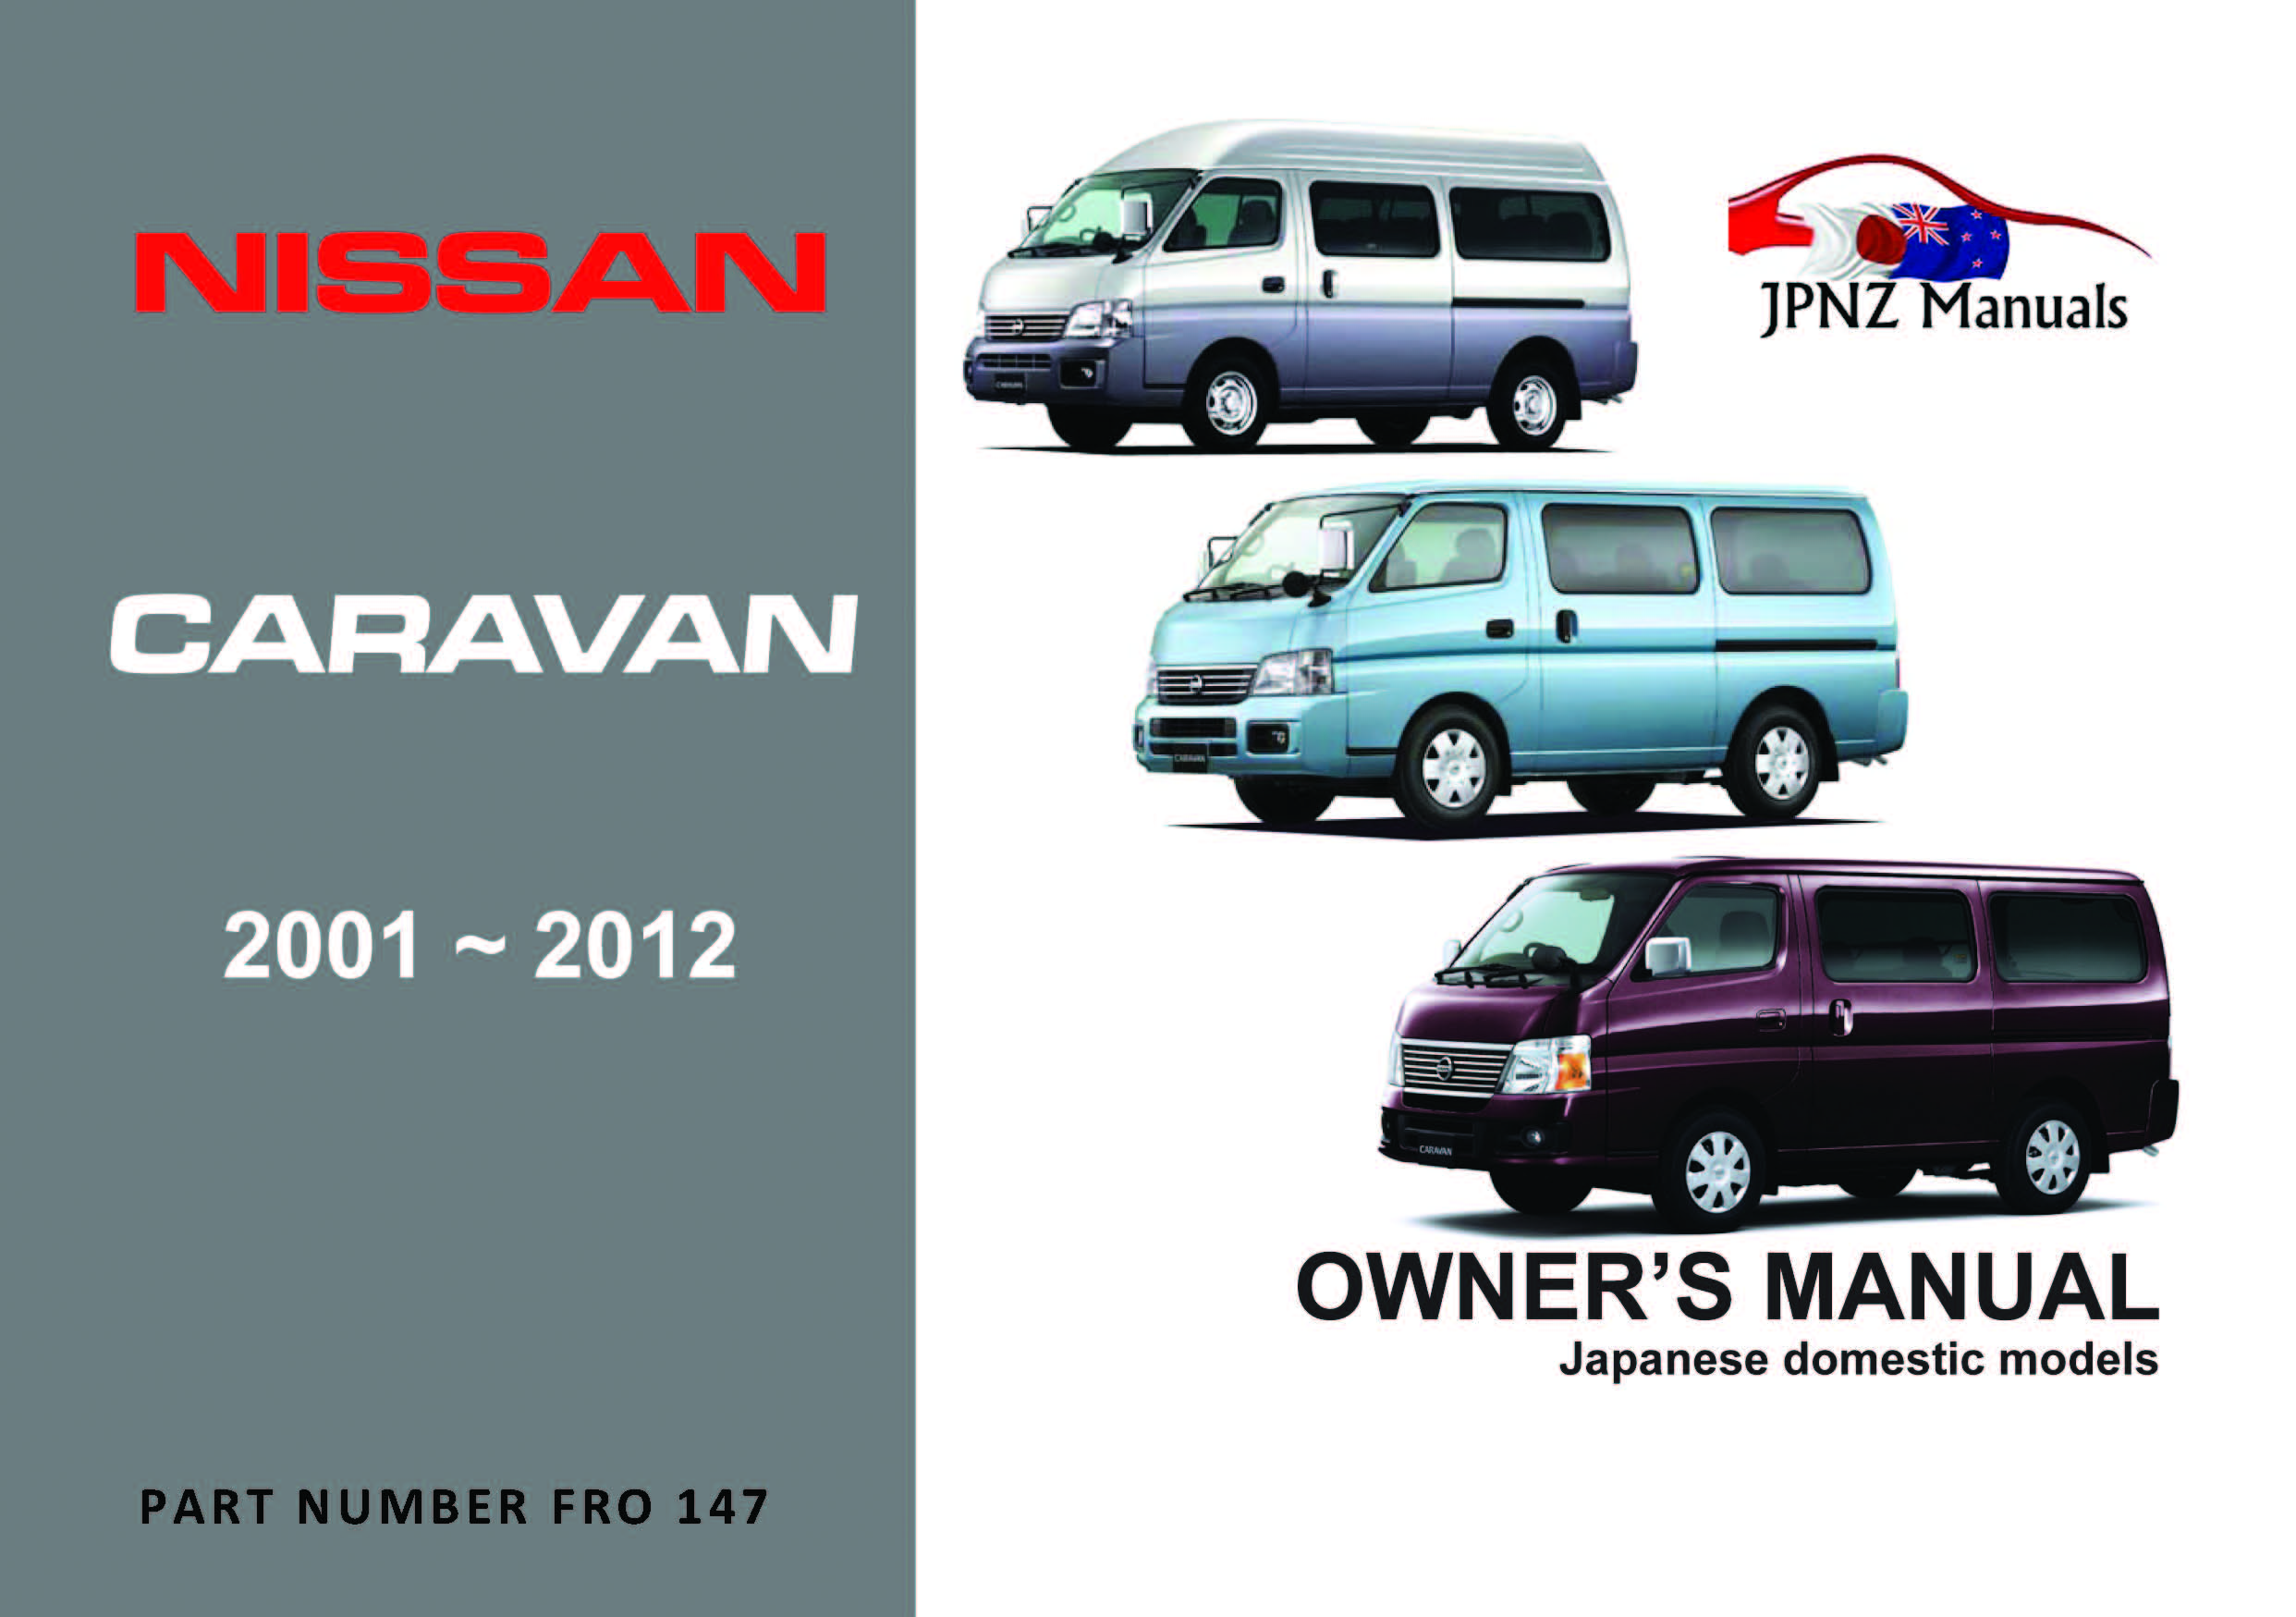 Nissan – Caravan owners manual 2001 – 2012